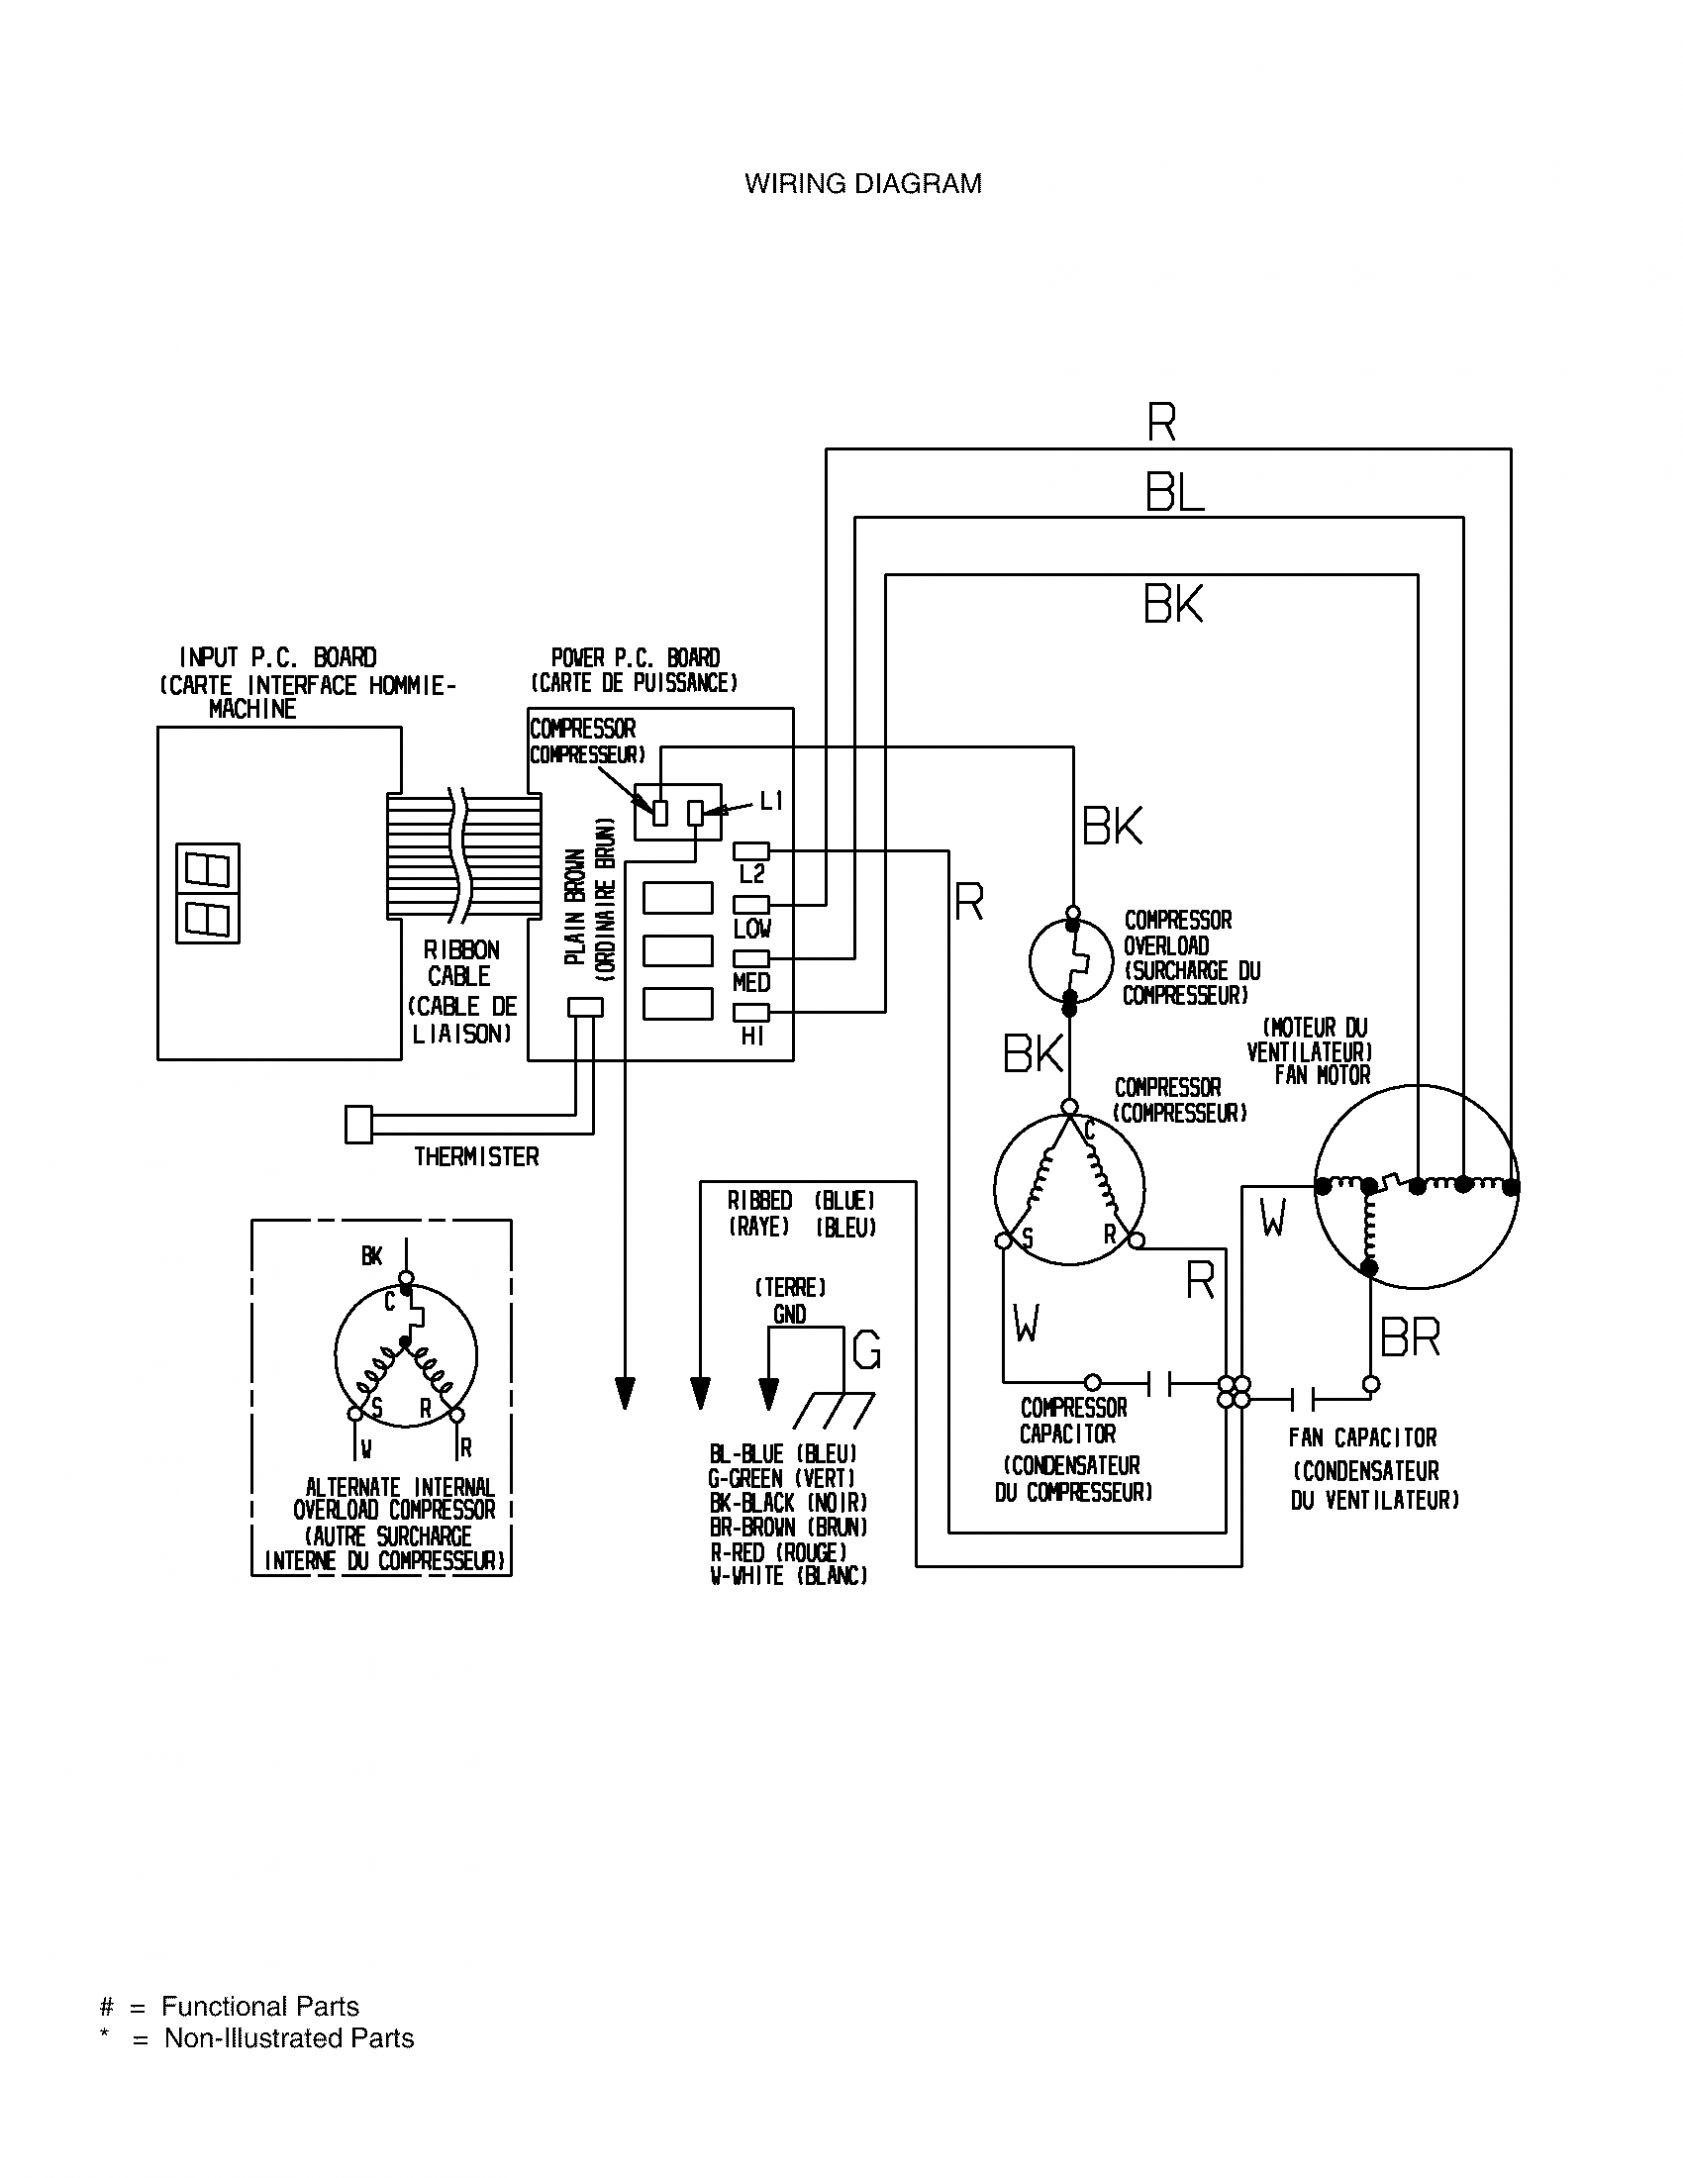 hight resolution of residential air conditioner wiring diagram sample